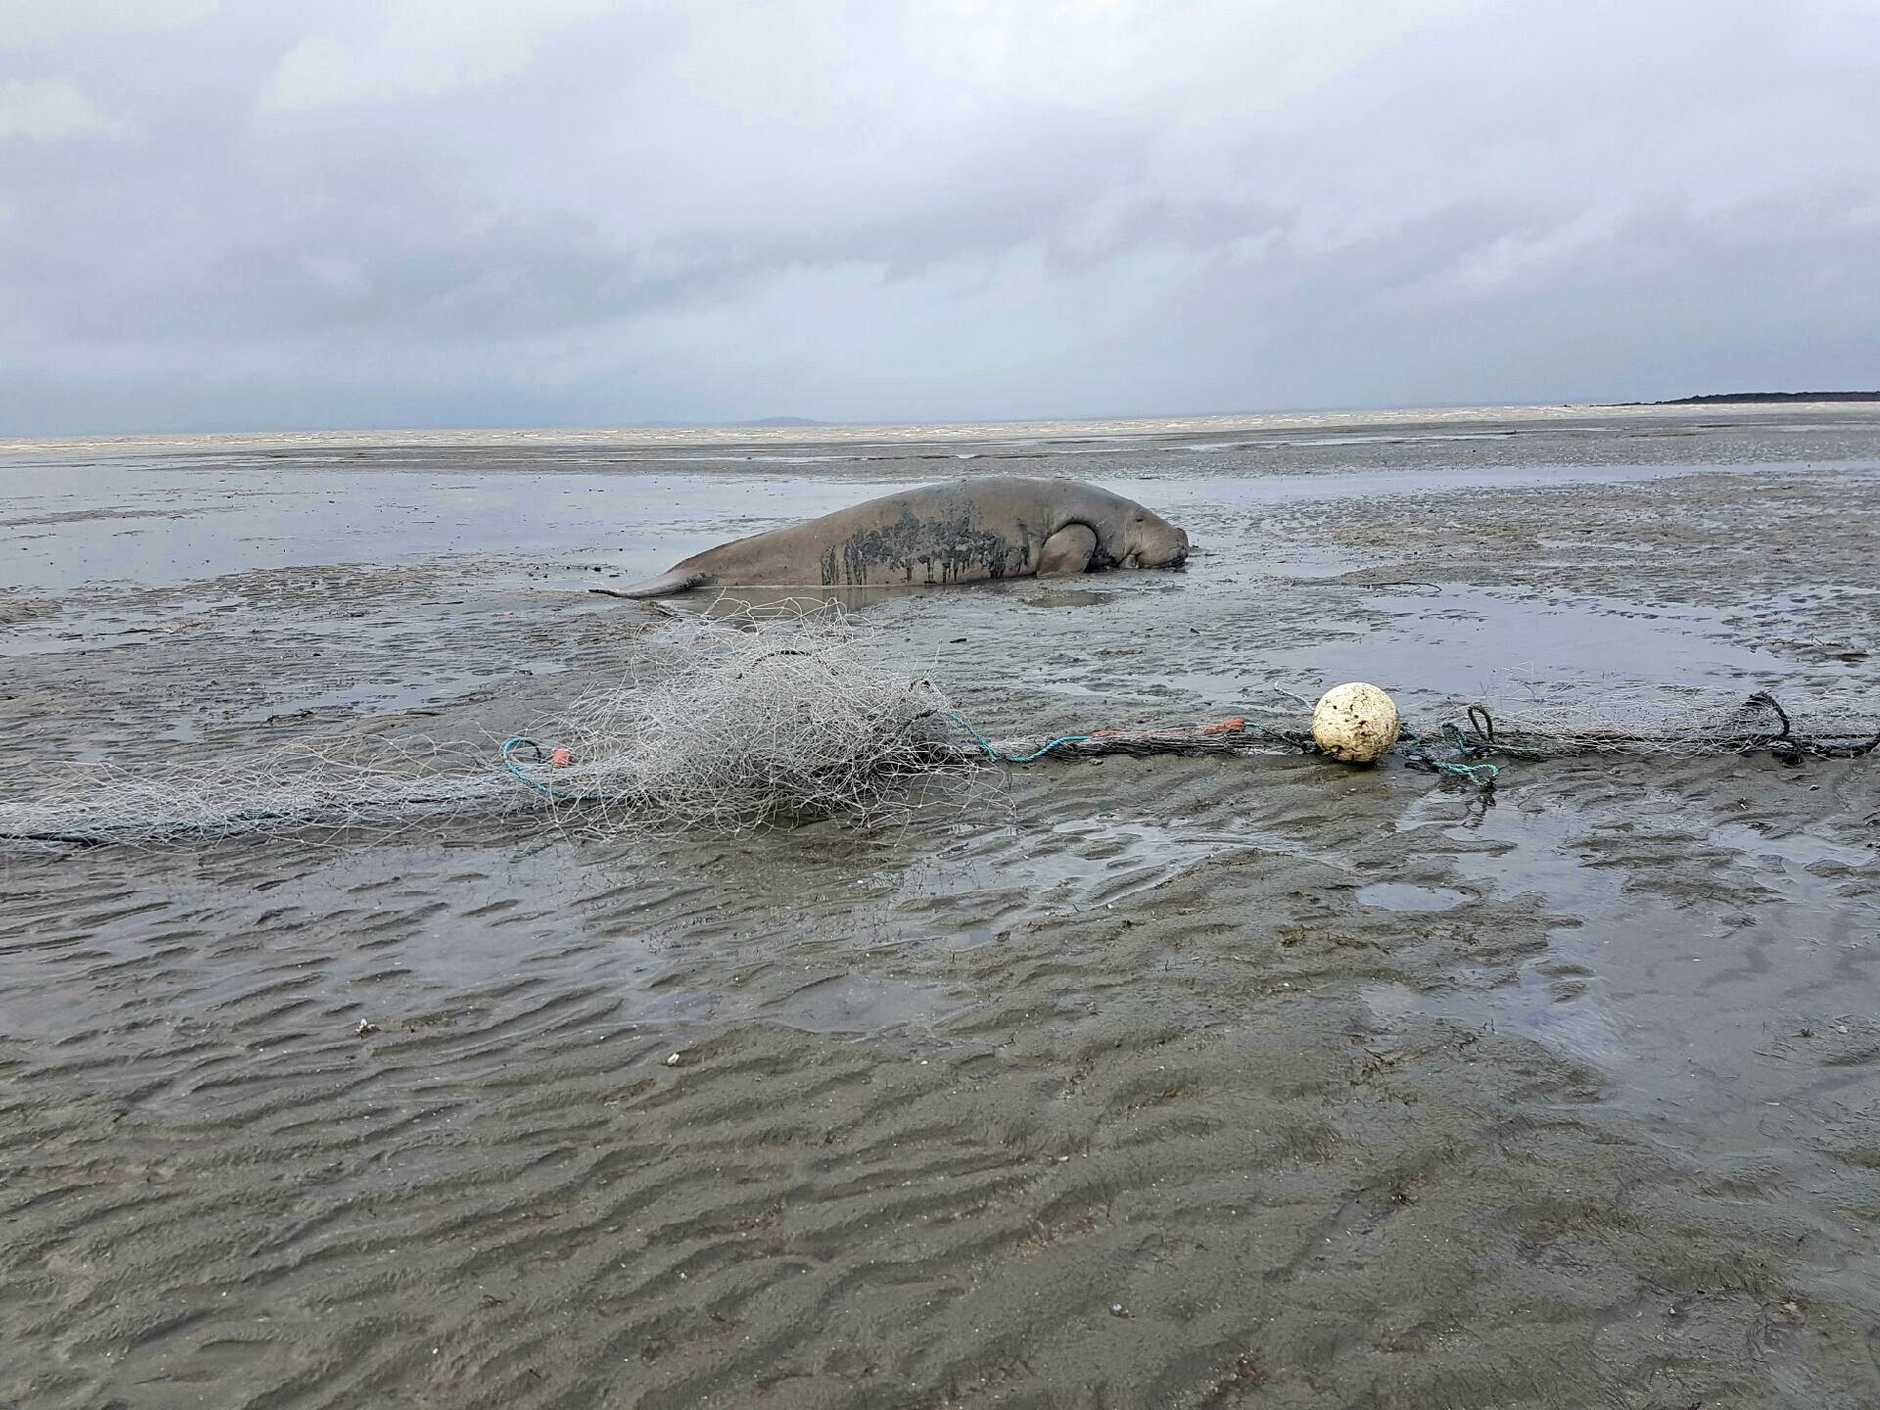 FREED: This photo, taken by an onlooker who wants to remain anonymous on April 2 at Llewellyn Bay, just south of Mackay, shows a stranded female dugong after being cut free from a commercial gill net.